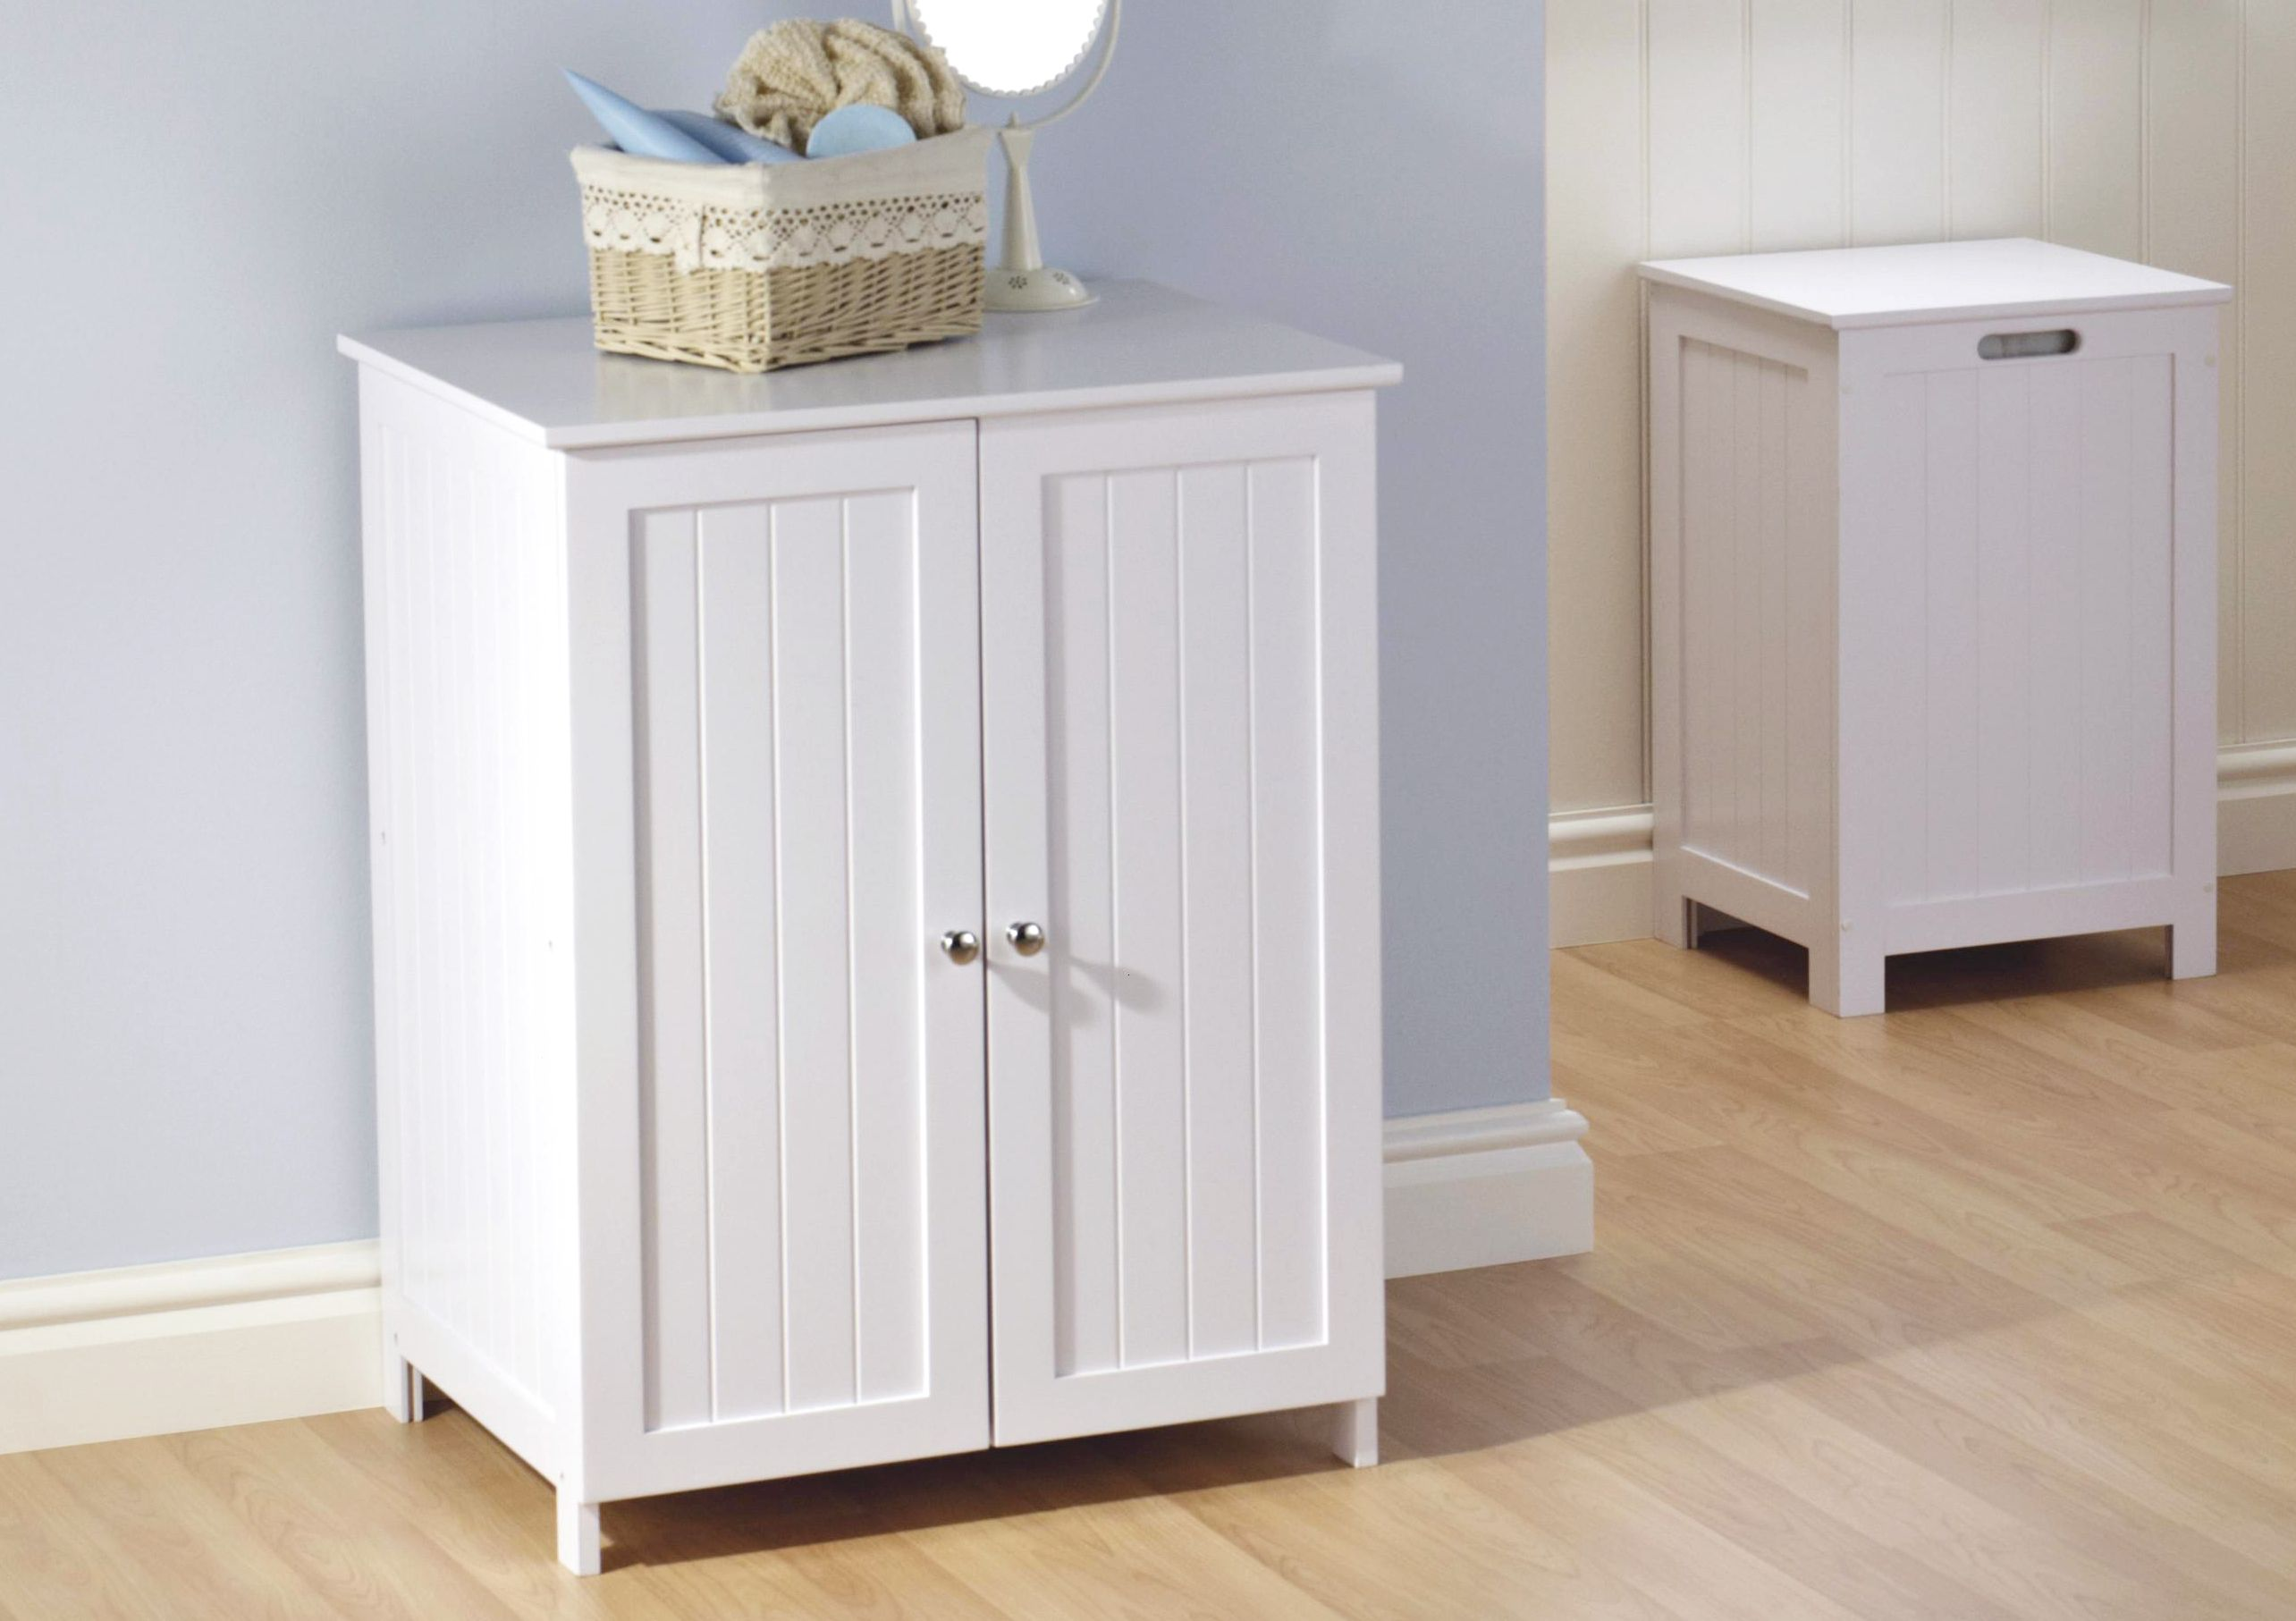 bathroom cabinets  furniture  bathroom storage  diy at bq,